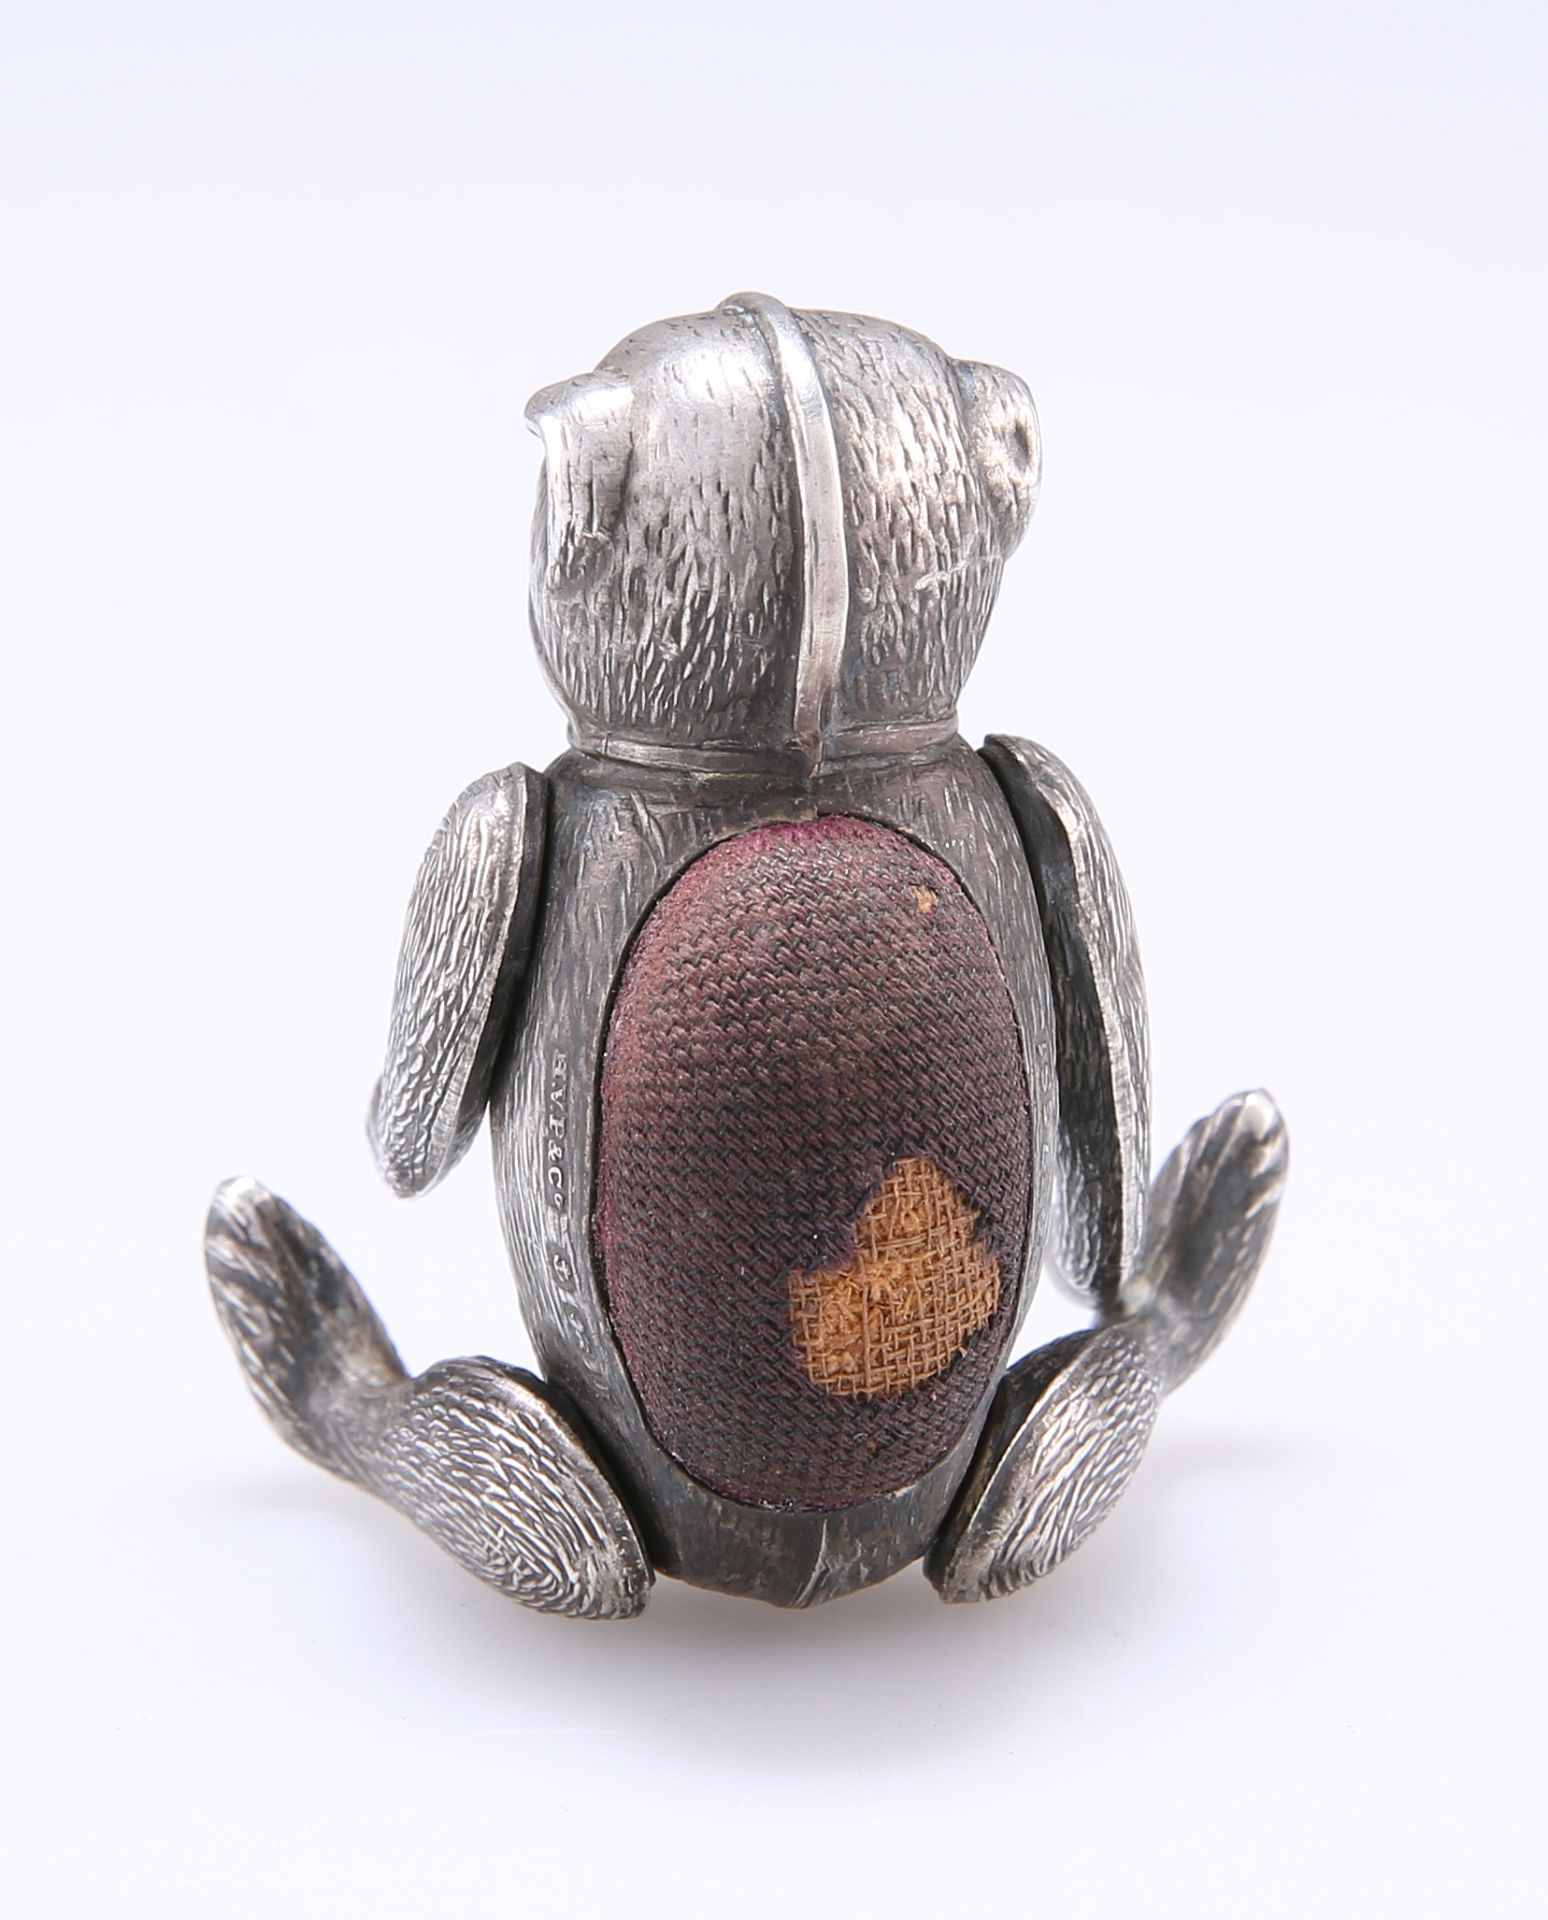 AN EDWARD VII SILVER NOVELTY BEAR PINCUSHION - Image 2 of 4